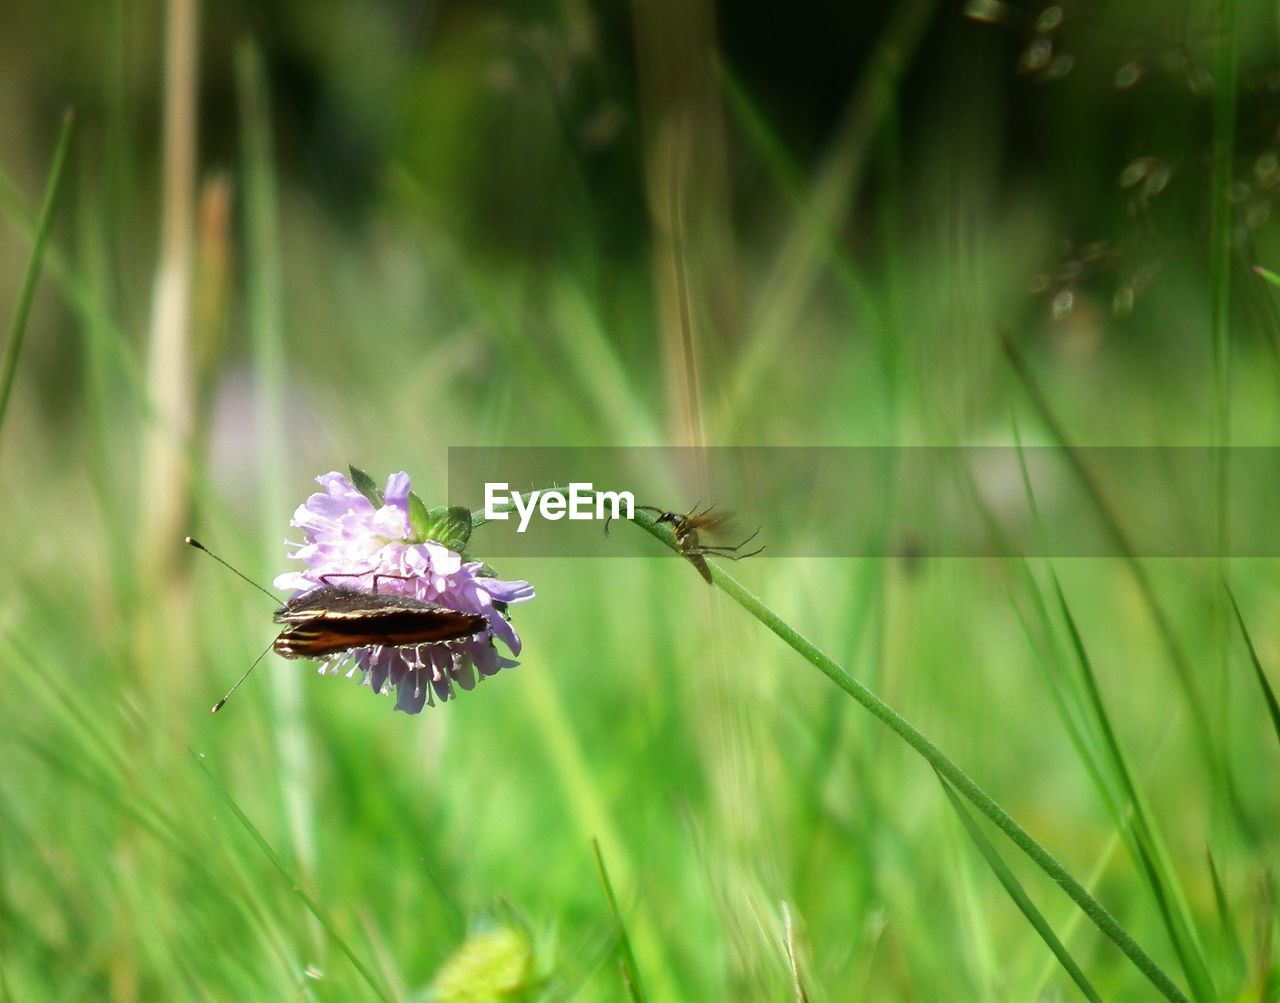 plant, beauty in nature, growth, flower, flowering plant, freshness, fragility, vulnerability, green color, close-up, nature, land, day, selective focus, no people, focus on foreground, field, flower head, outdoors, grass, purple, blade of grass